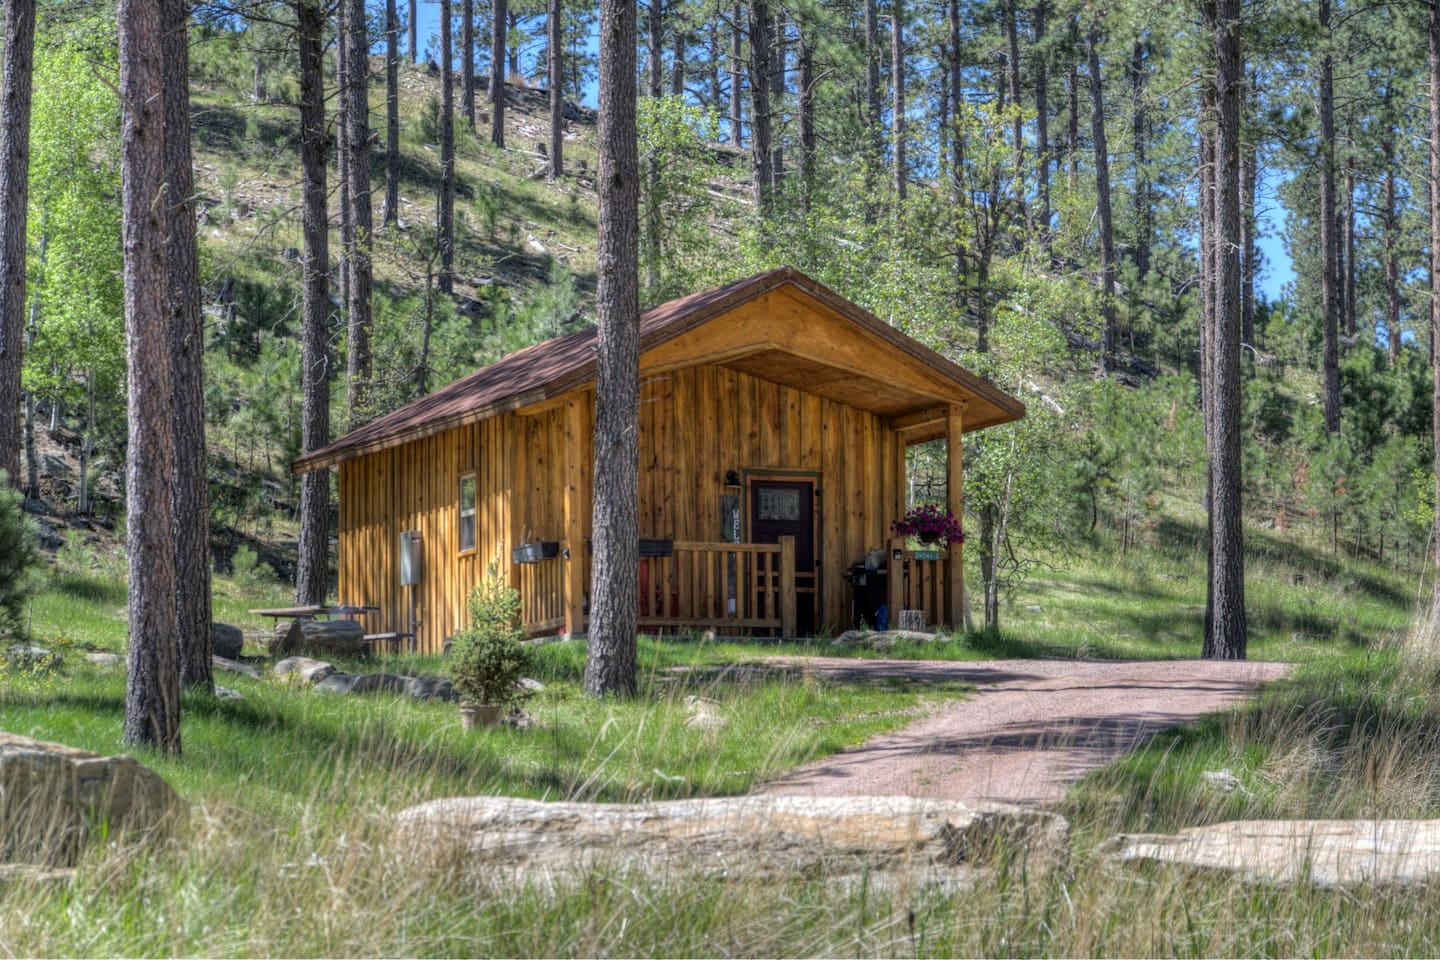 the cabin is nestled on a hillside covered with pines, aspens, oaks, and birch